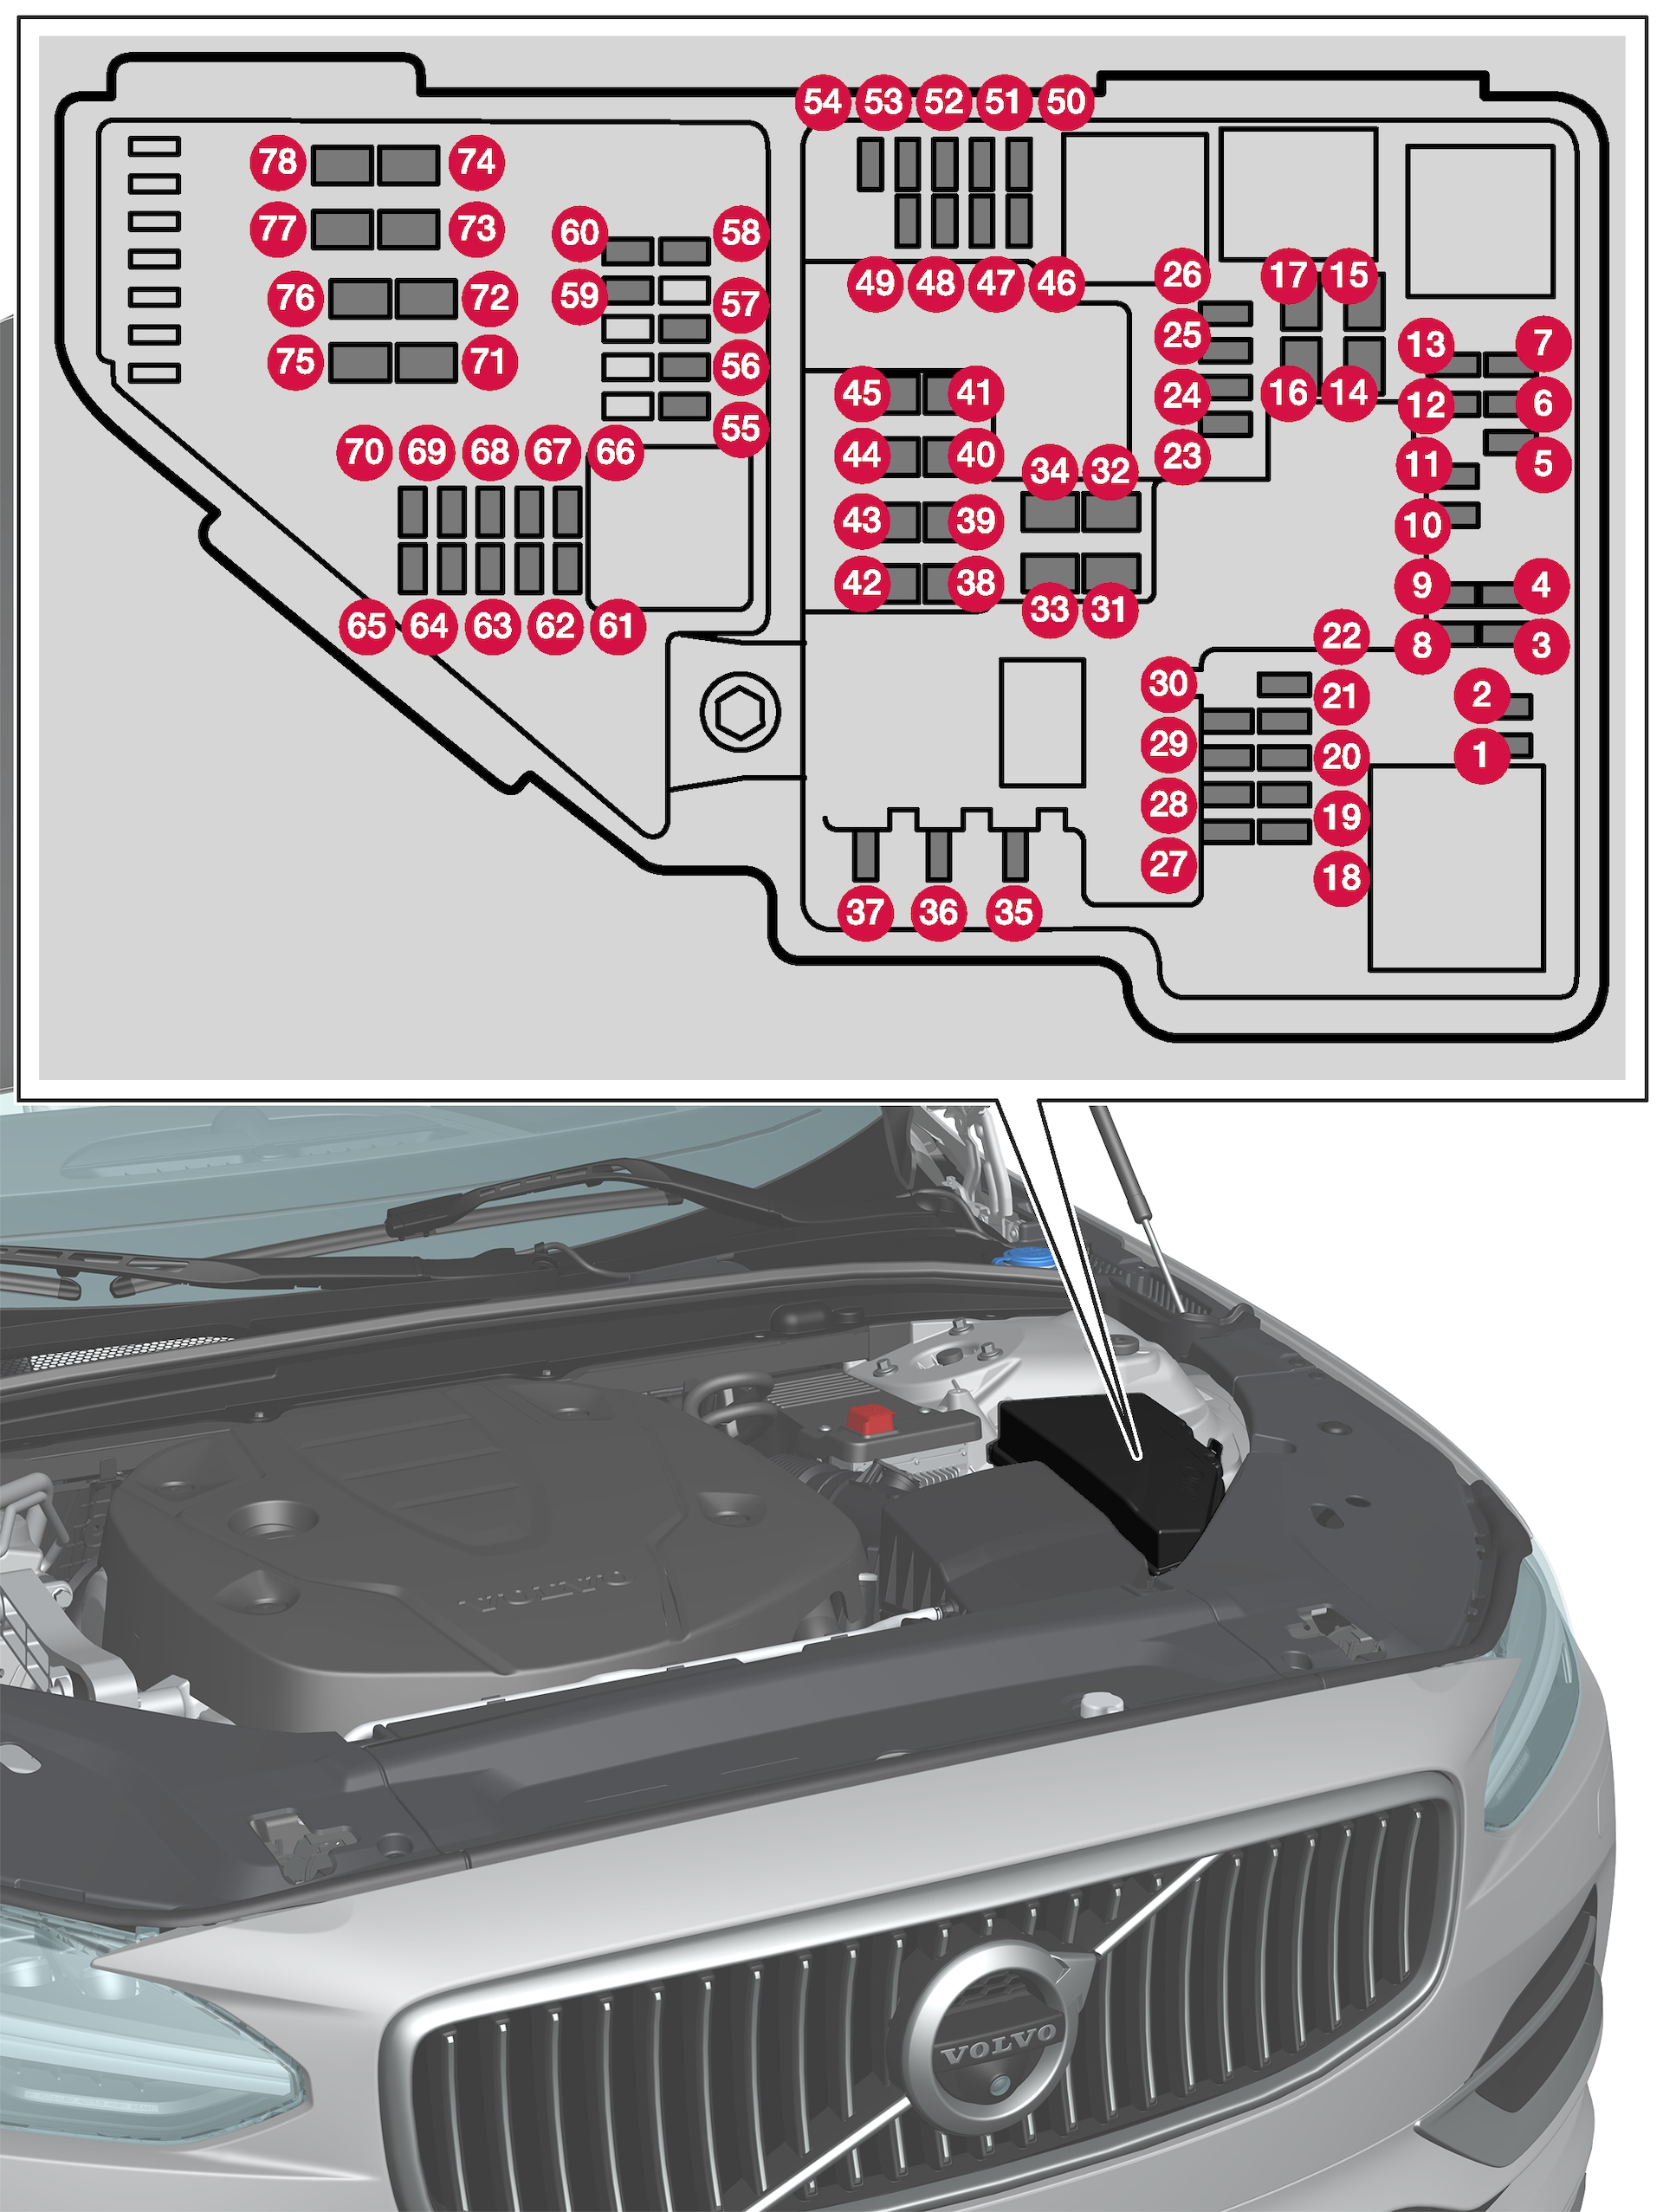 P5-S90/V90-1646-Engine Junction Box-Fuses in engine compartment